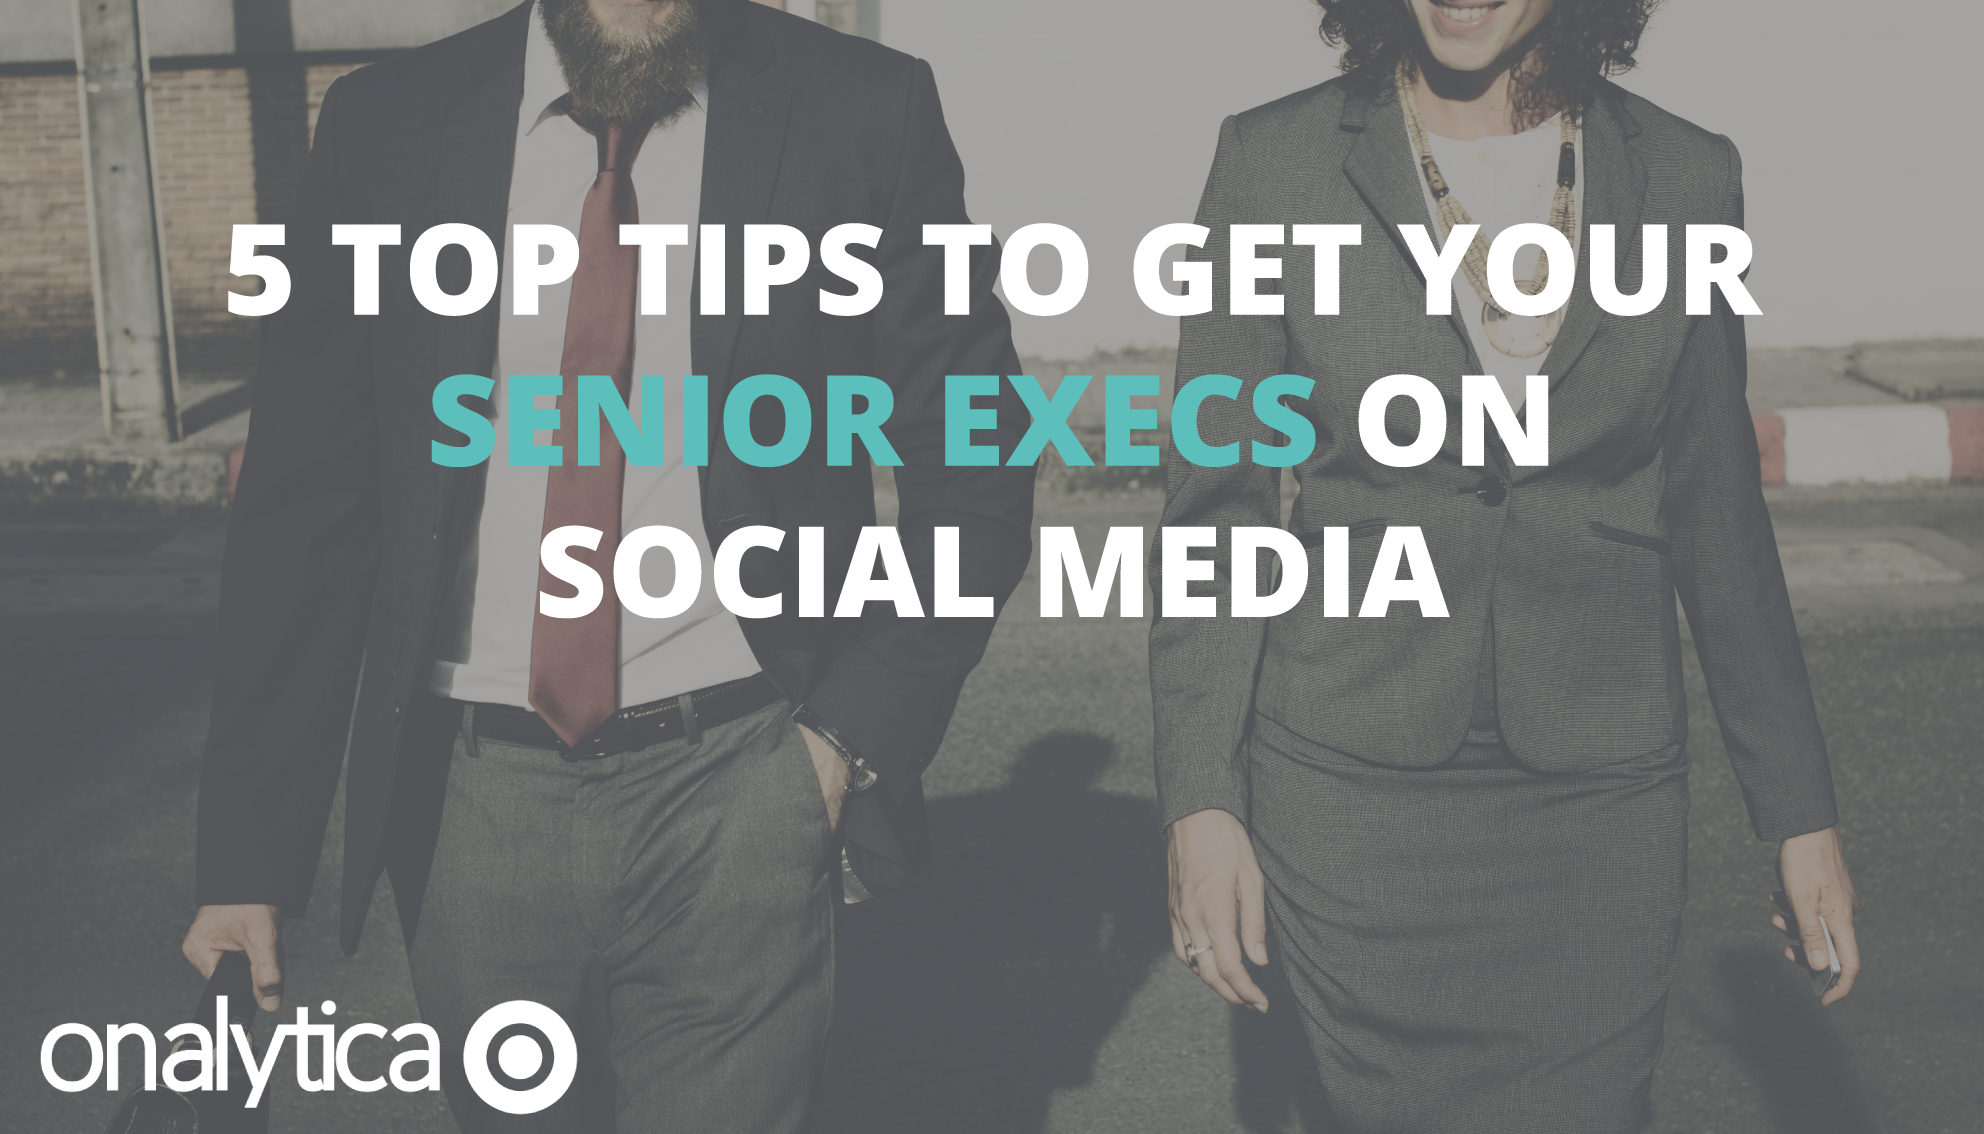 5 Top Tips to Get Your Senior Execs on Social Media